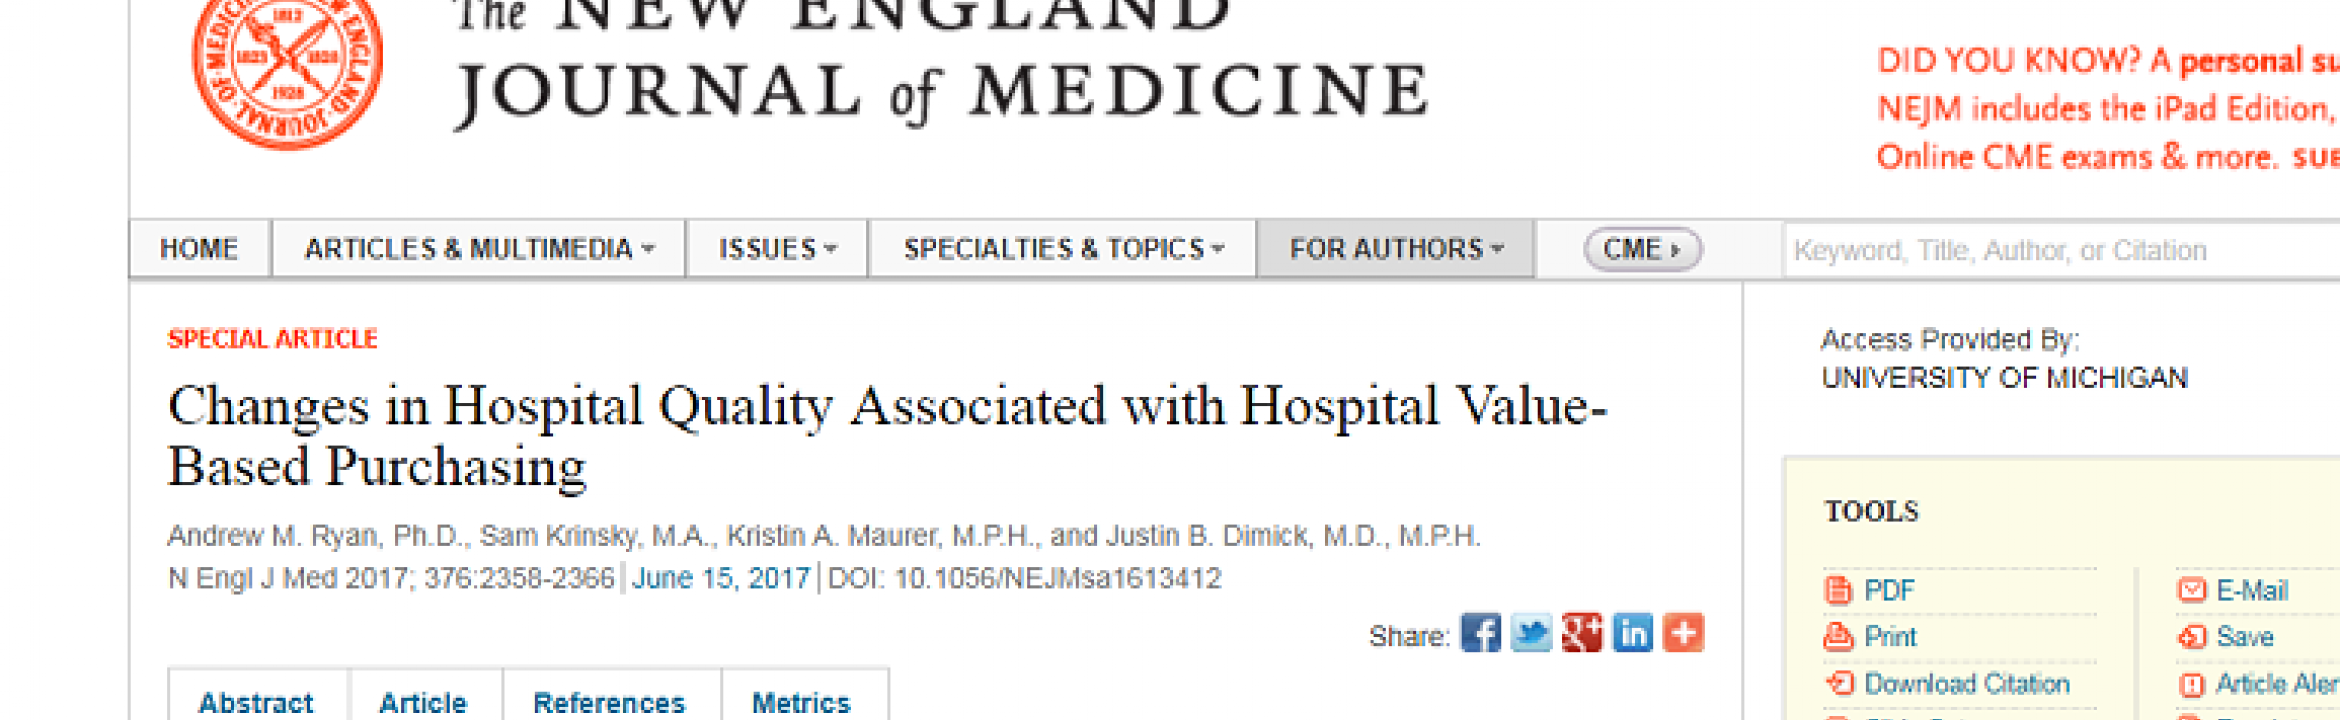 NEJM article screenshot